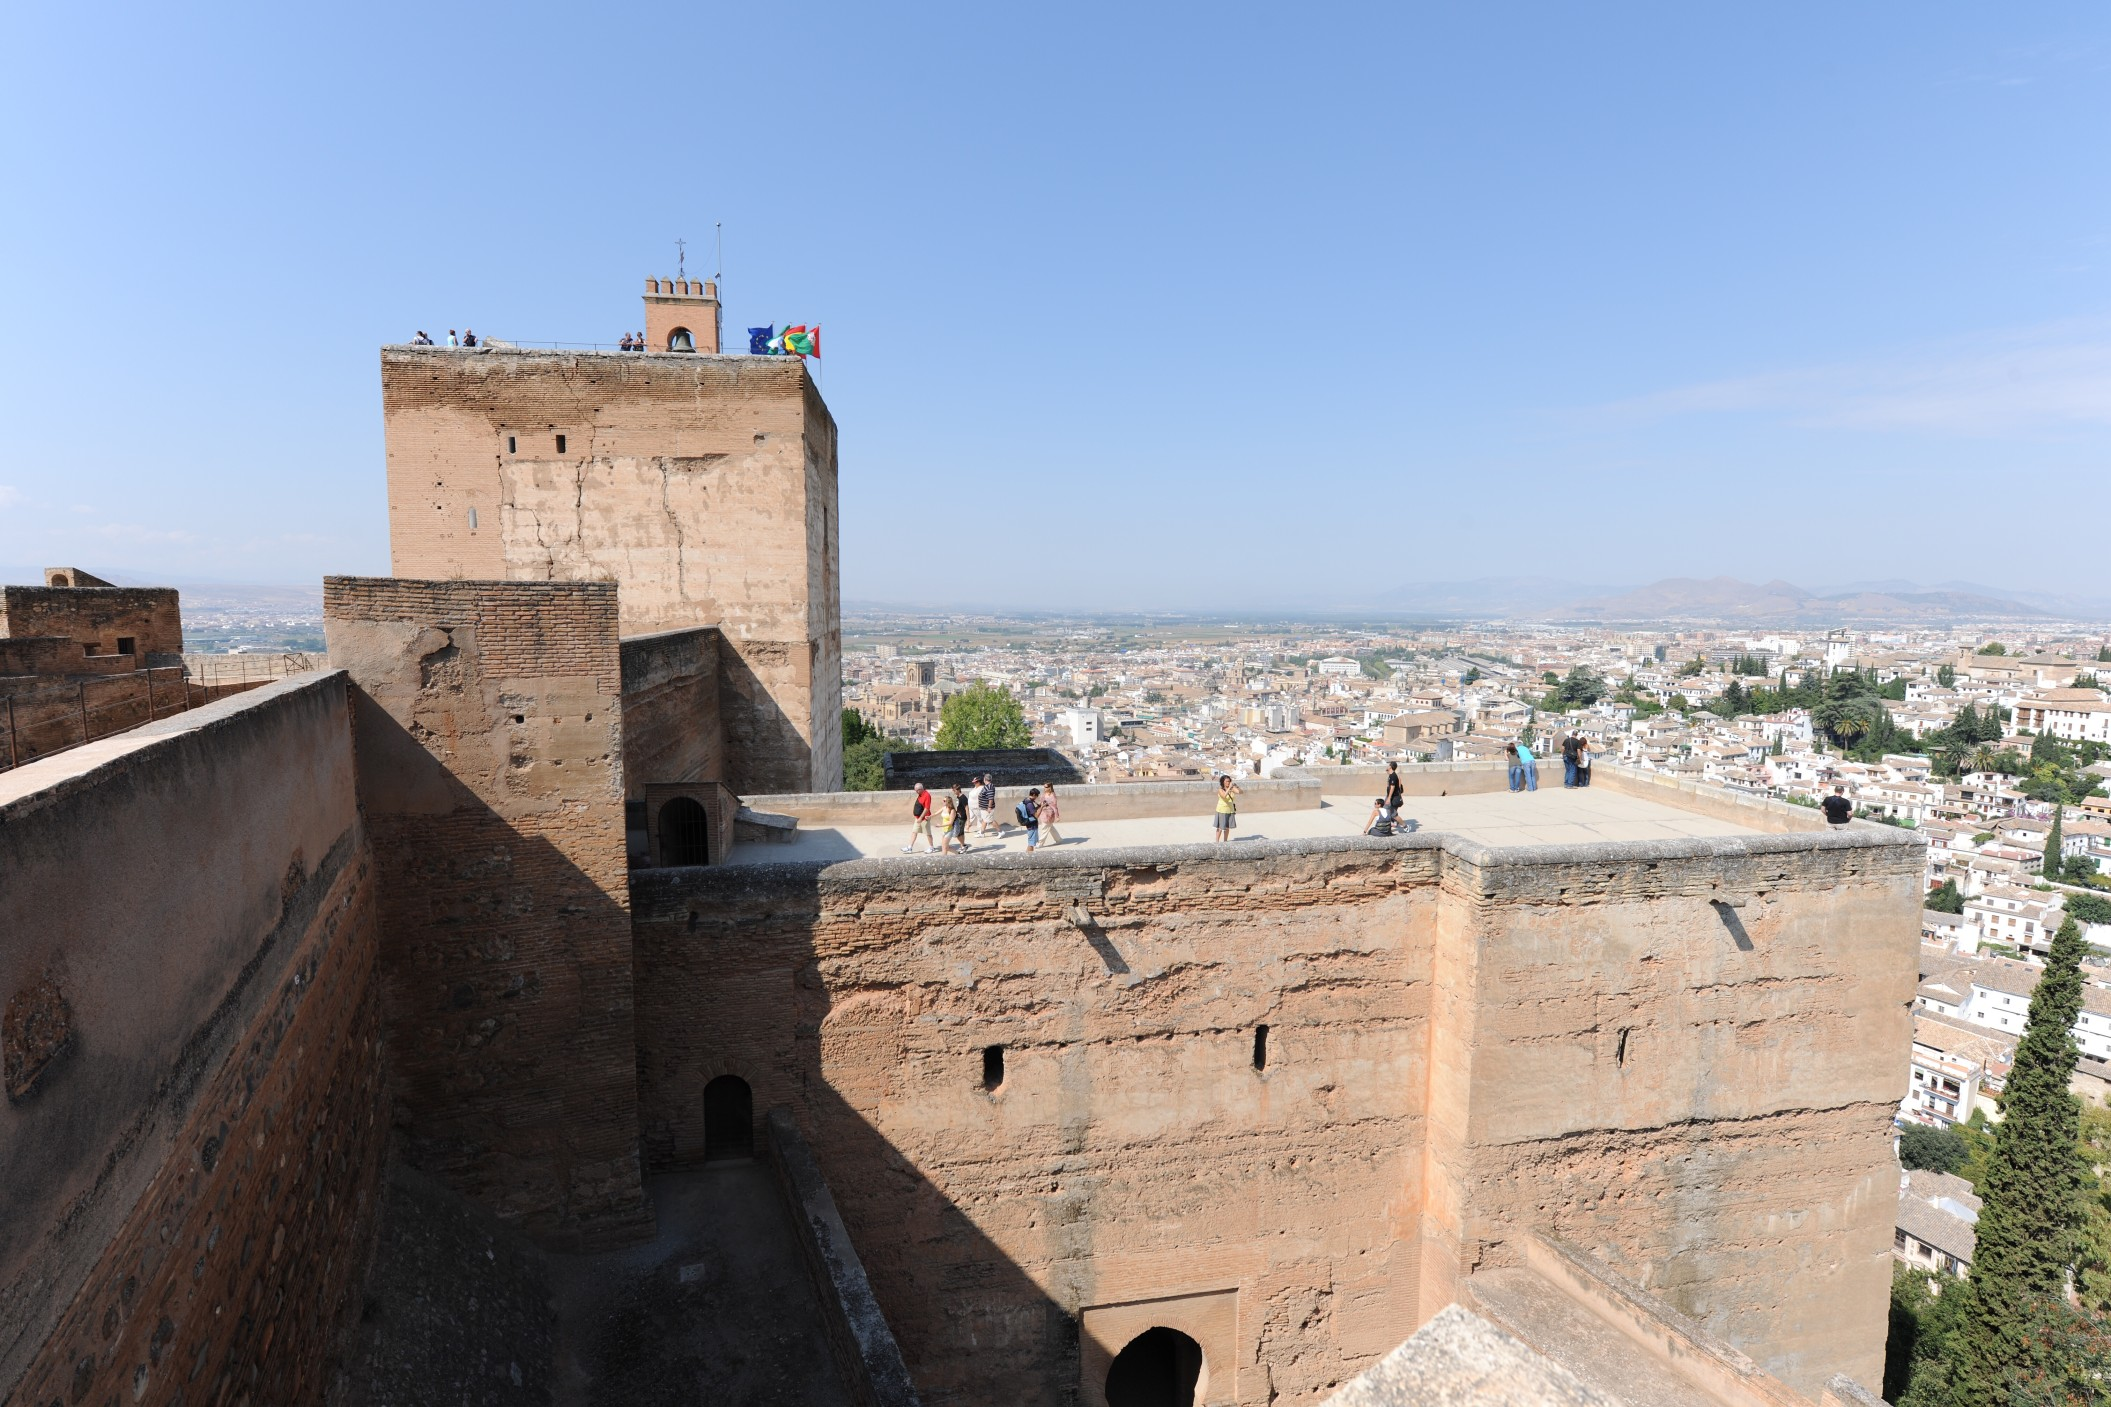 view-to-the-watchtower-torre-de-la-vela-the-alcazaba-the-alhambra-granada-andalusia-spain_t20_pRBg0Y (1)